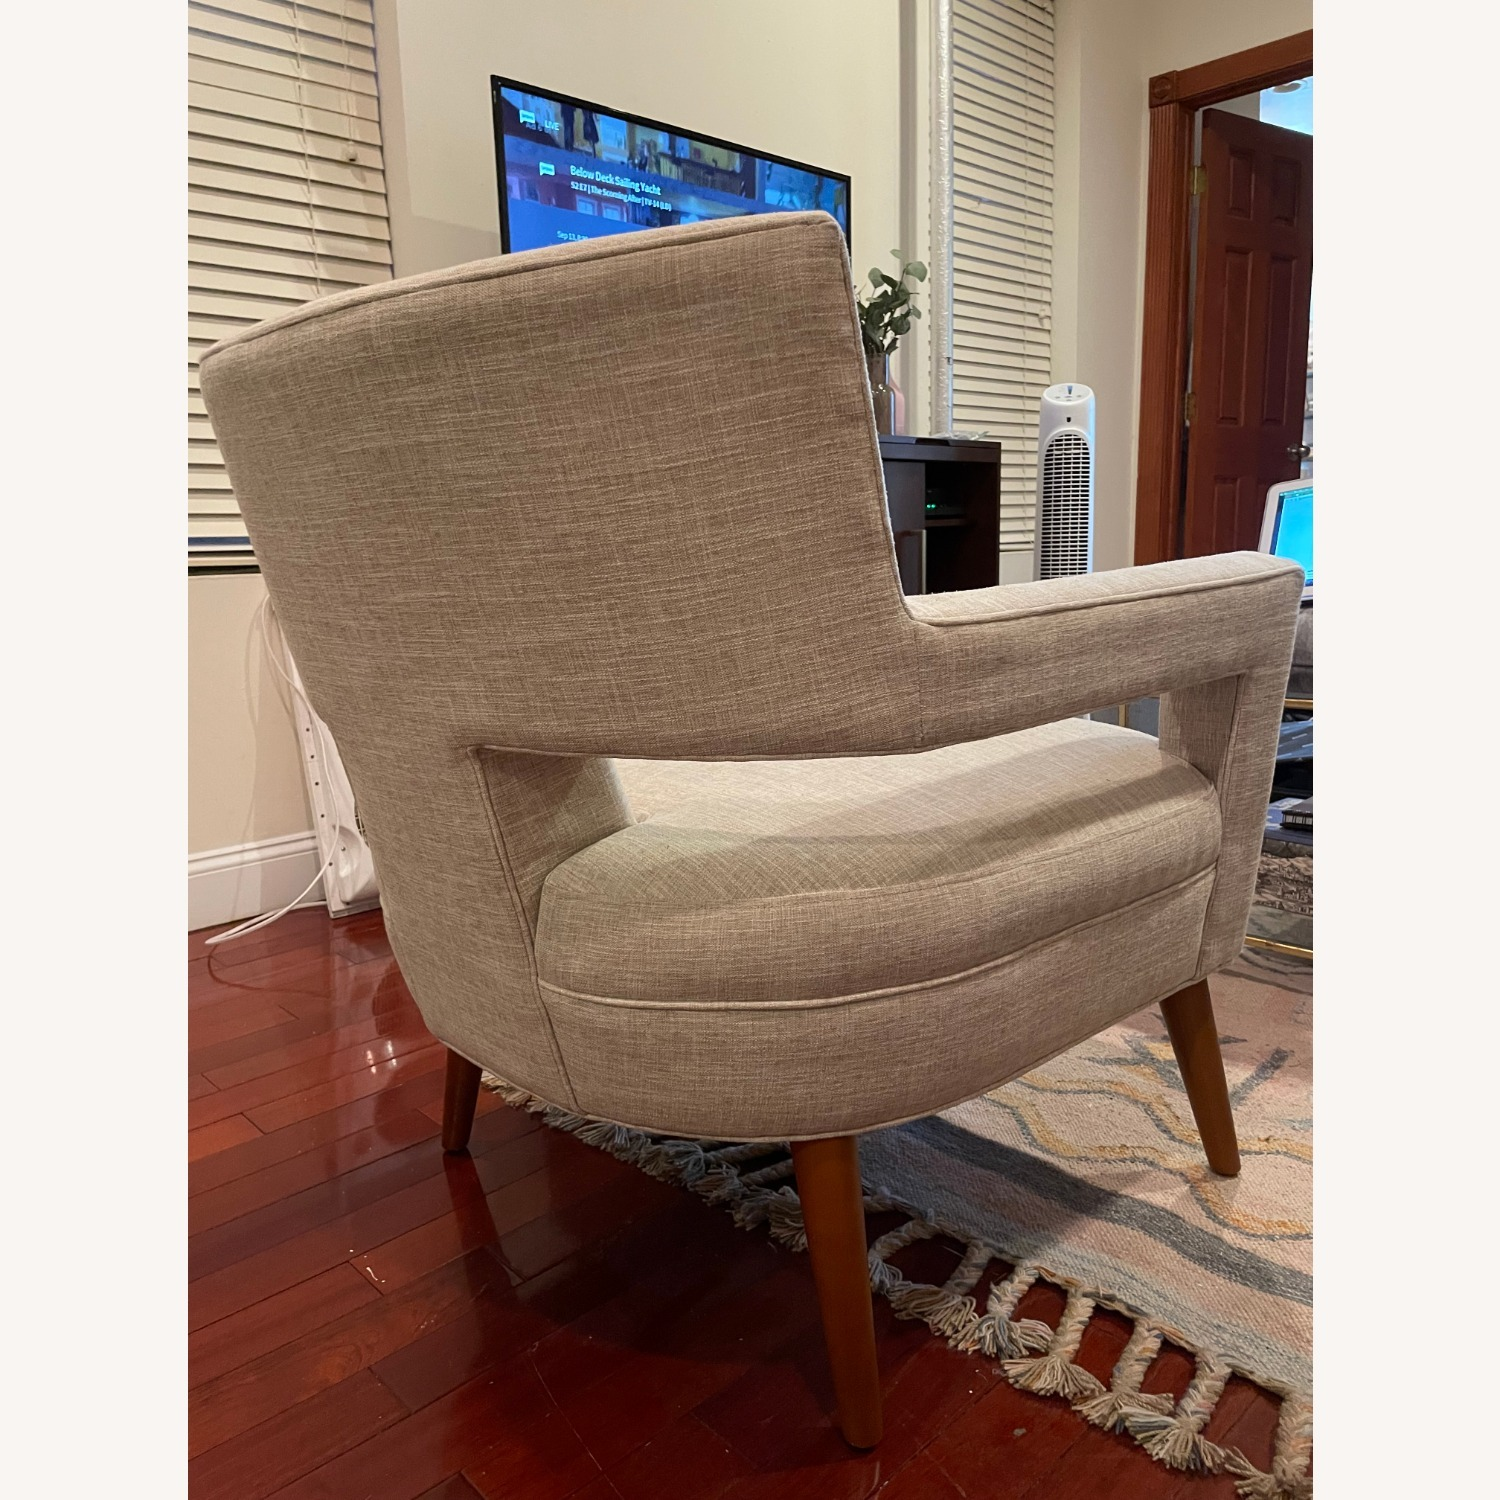 Modway Tufted Armchair - image-4